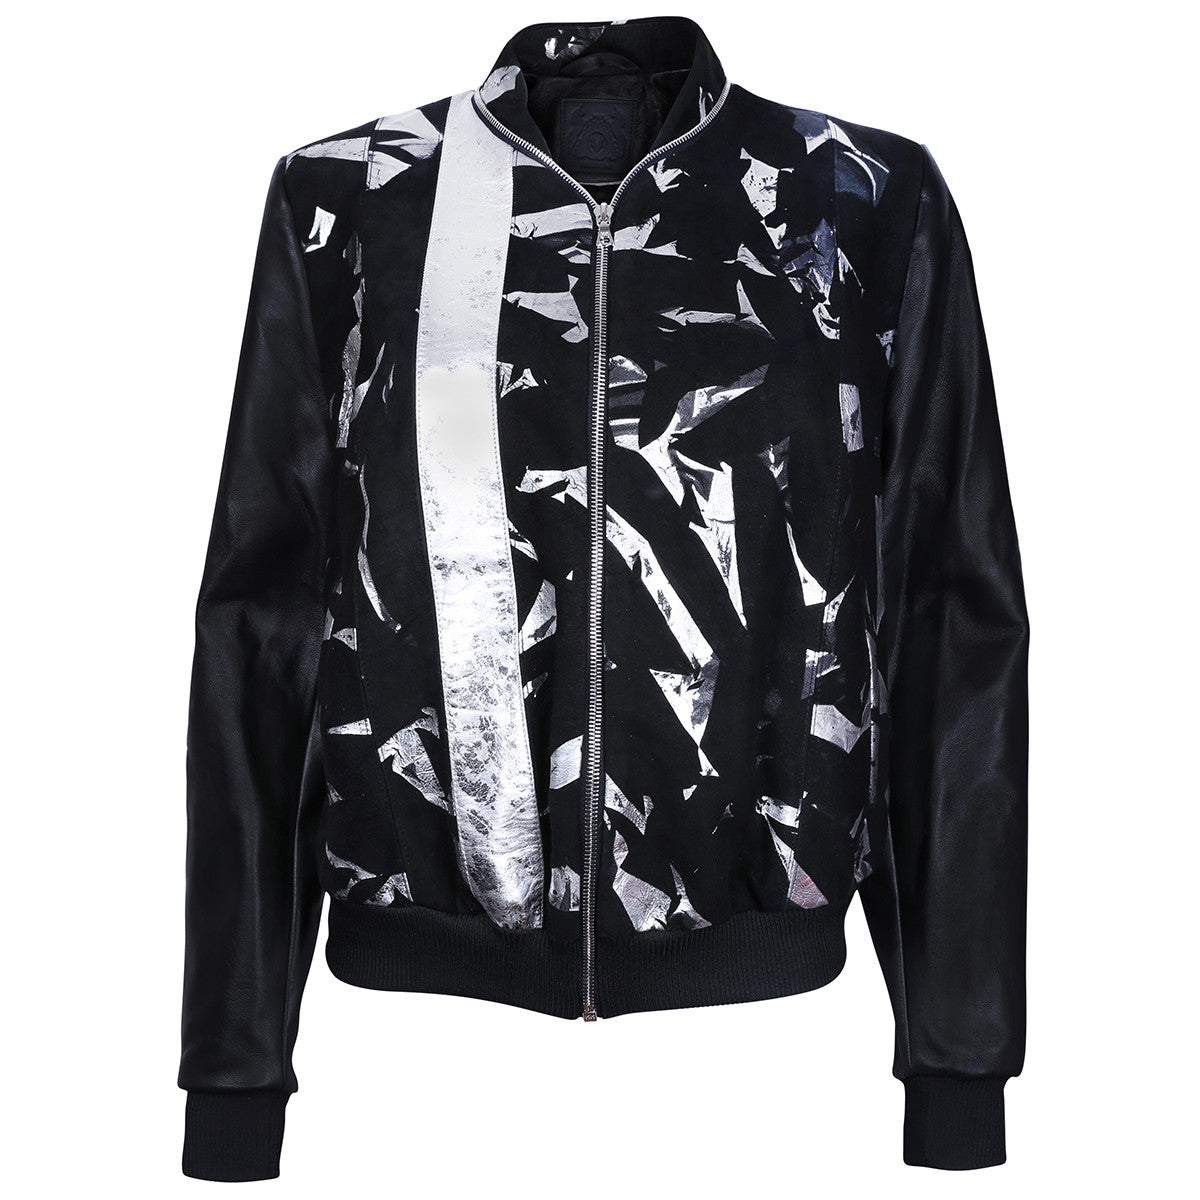 Black Suede Leather Bomber Jacket with Metallic Print Motif - VOLS & ORIGINAL